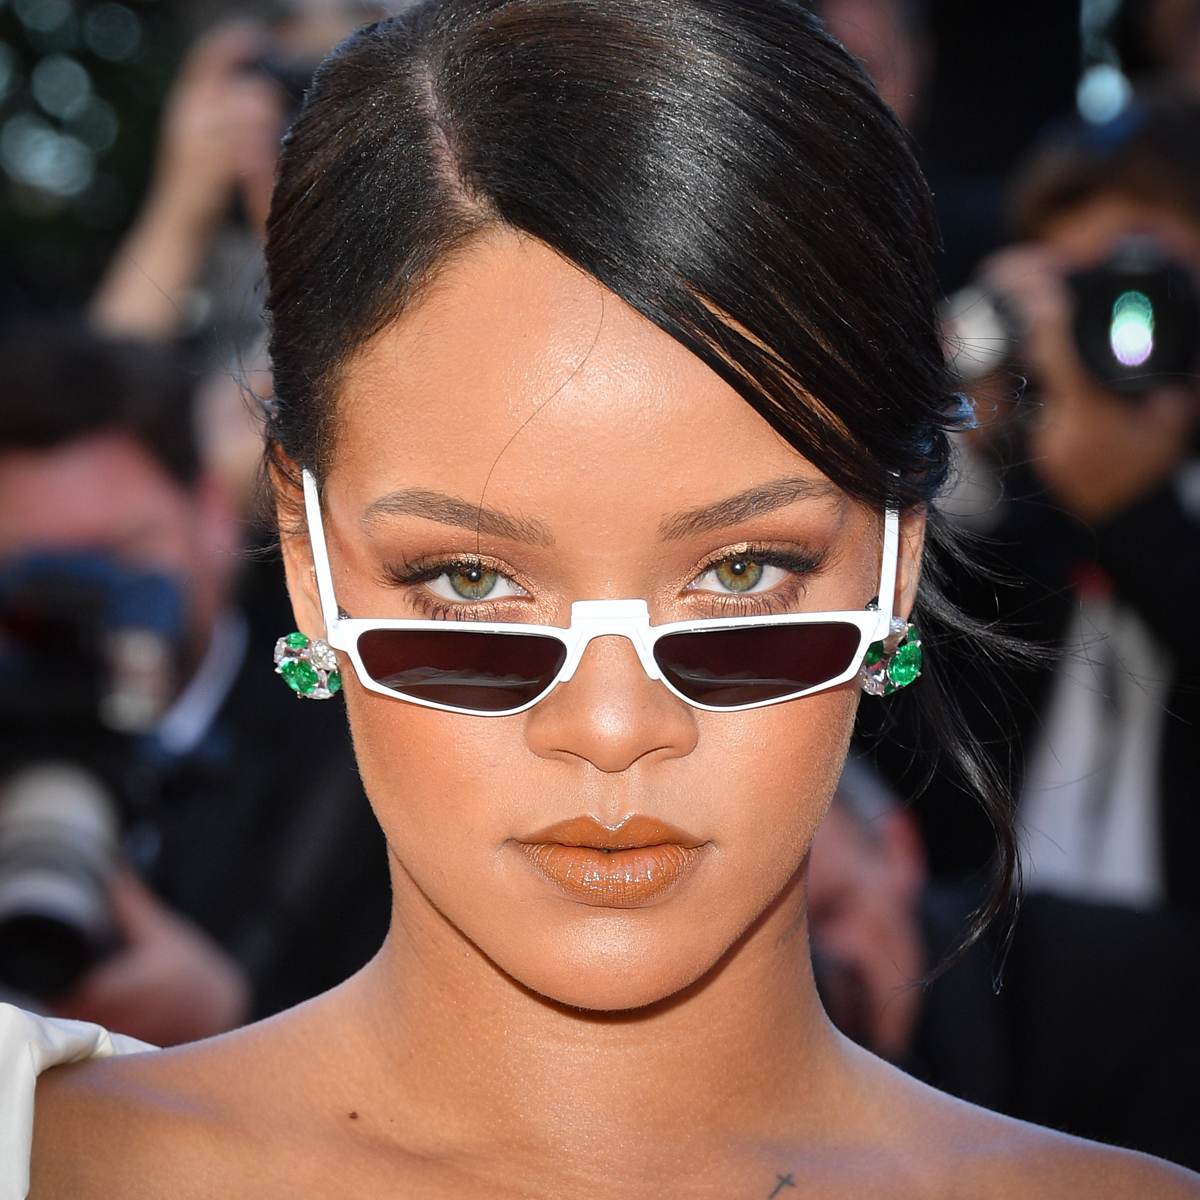 Why you've never seen Rihanna wearing any winged eyeliner